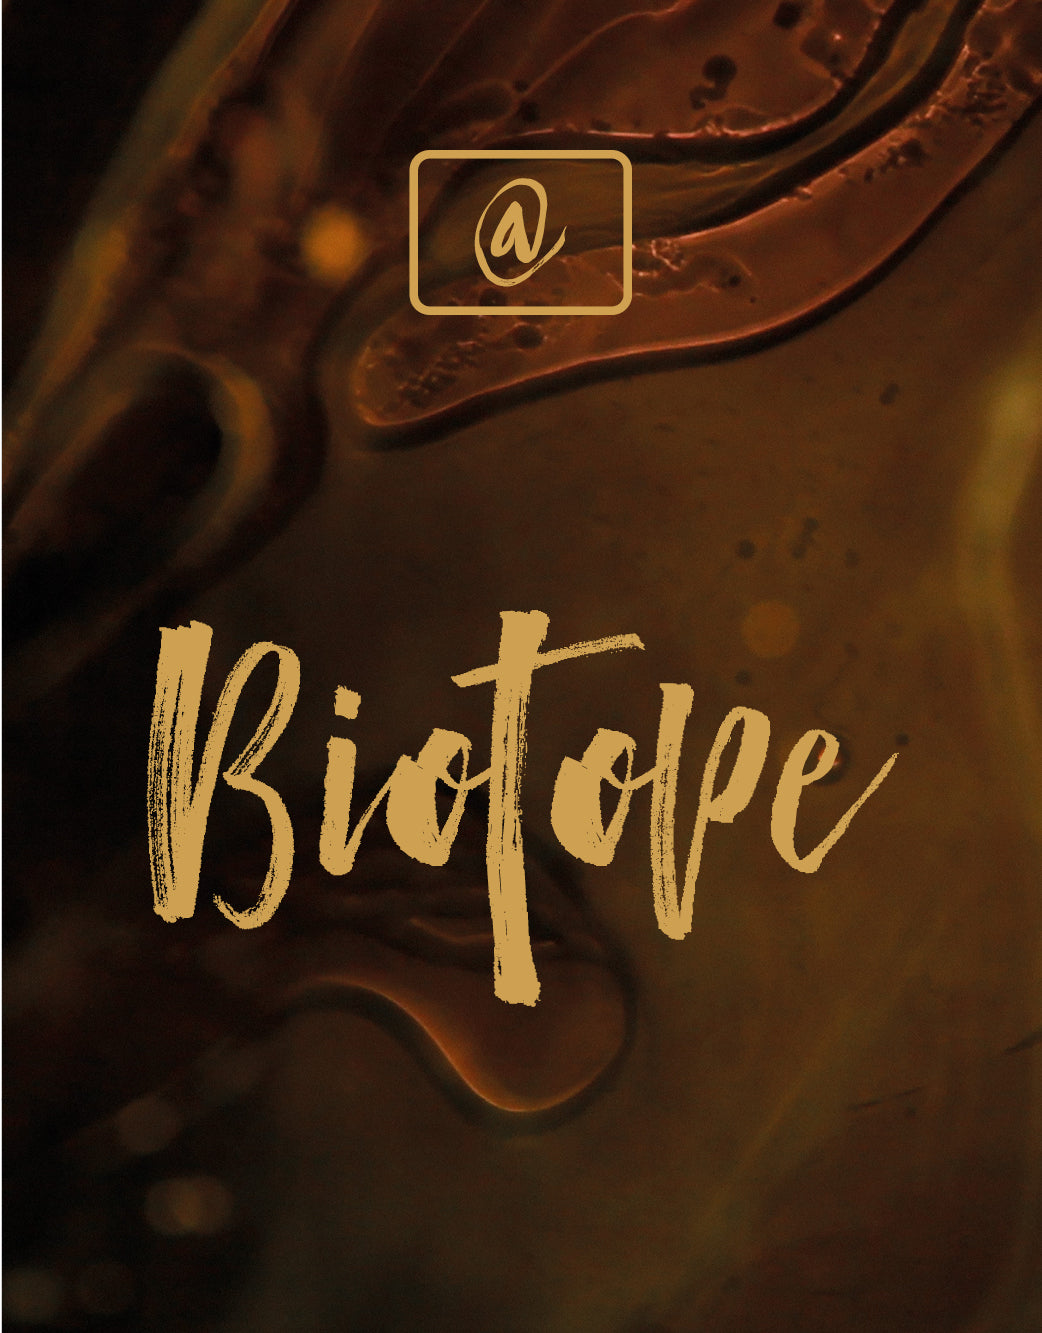 Biotope - 7 courses